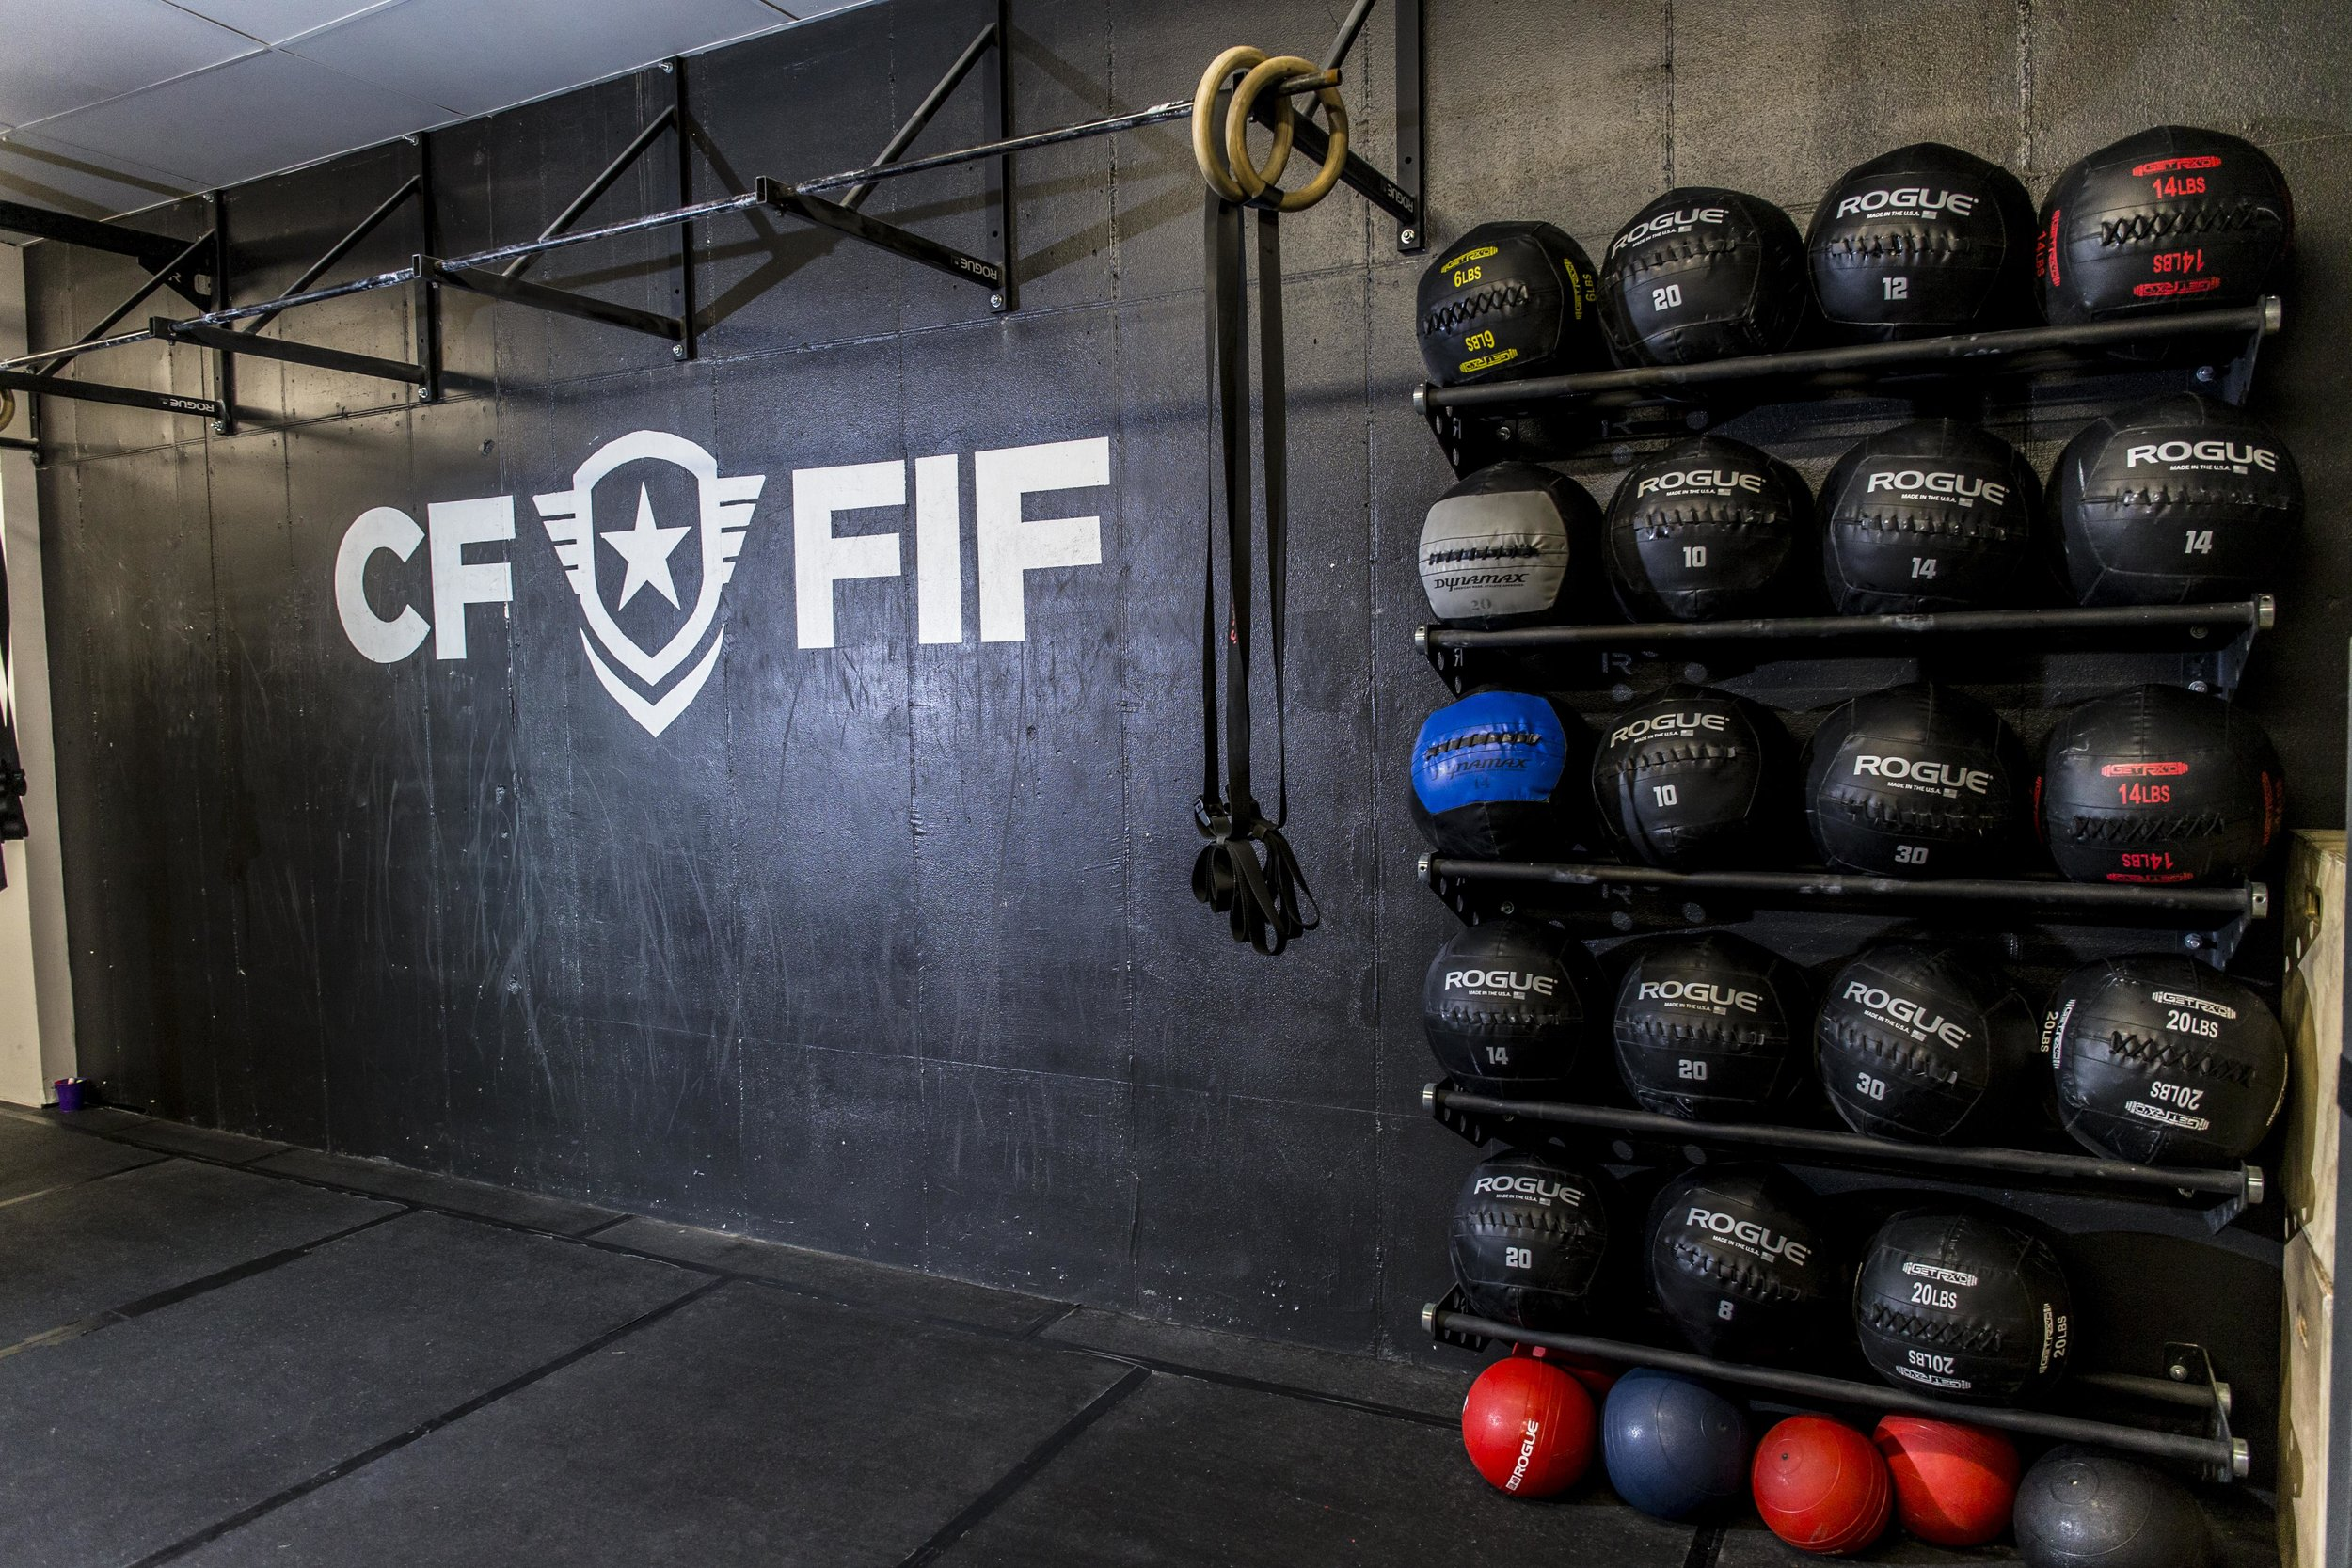 18.02.24.0666 RP FITNESS Crossfit FIF Gym Shoot.jpg